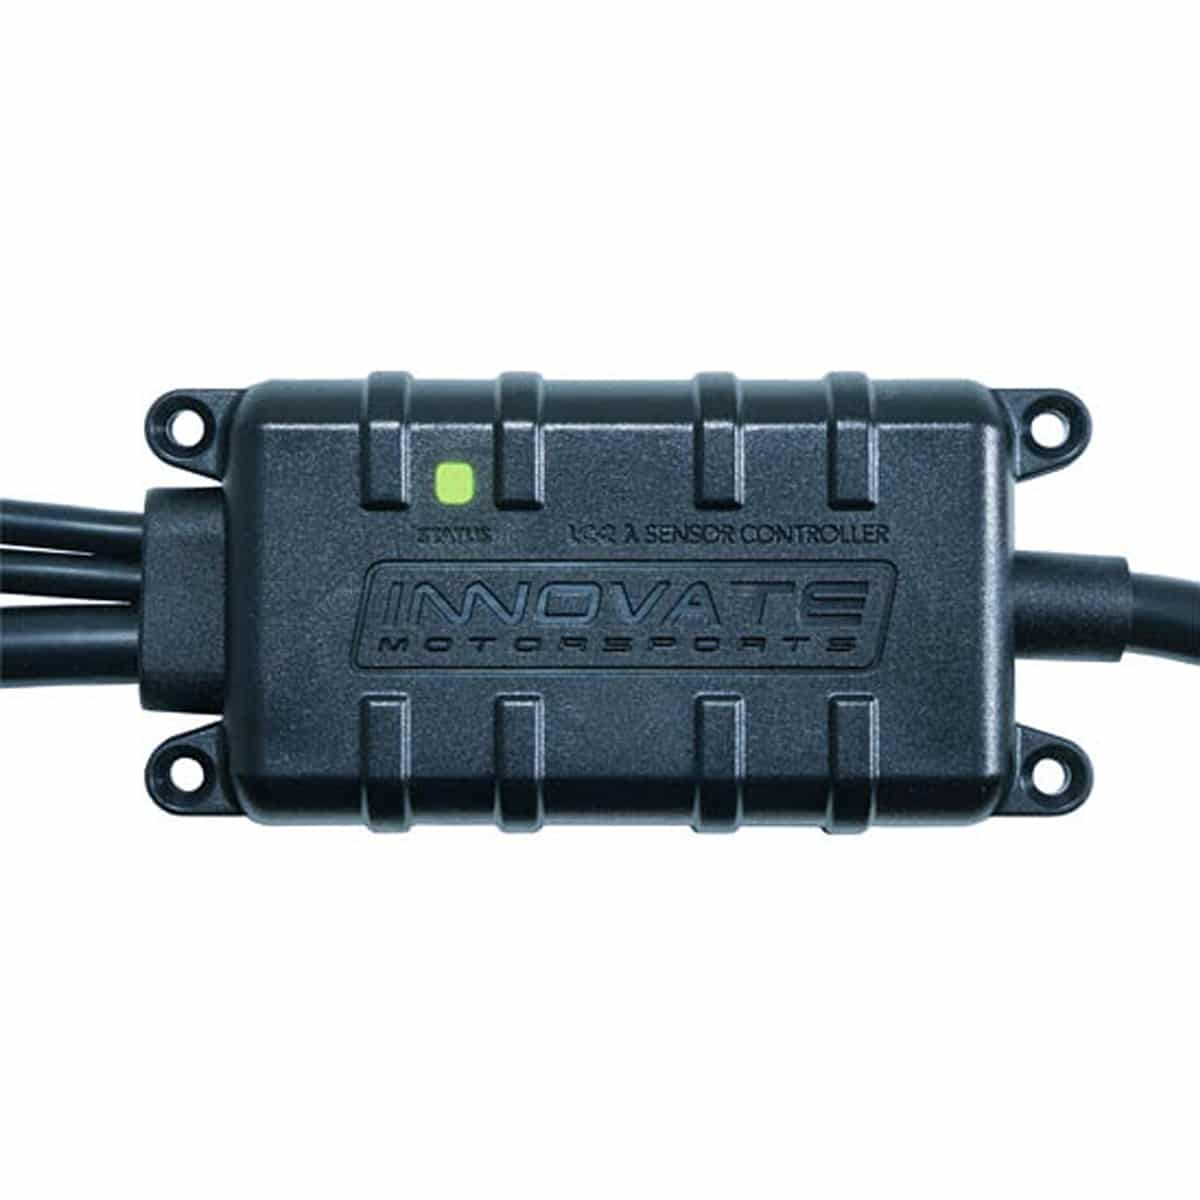 innovate lc-1 firmware 1.2 download